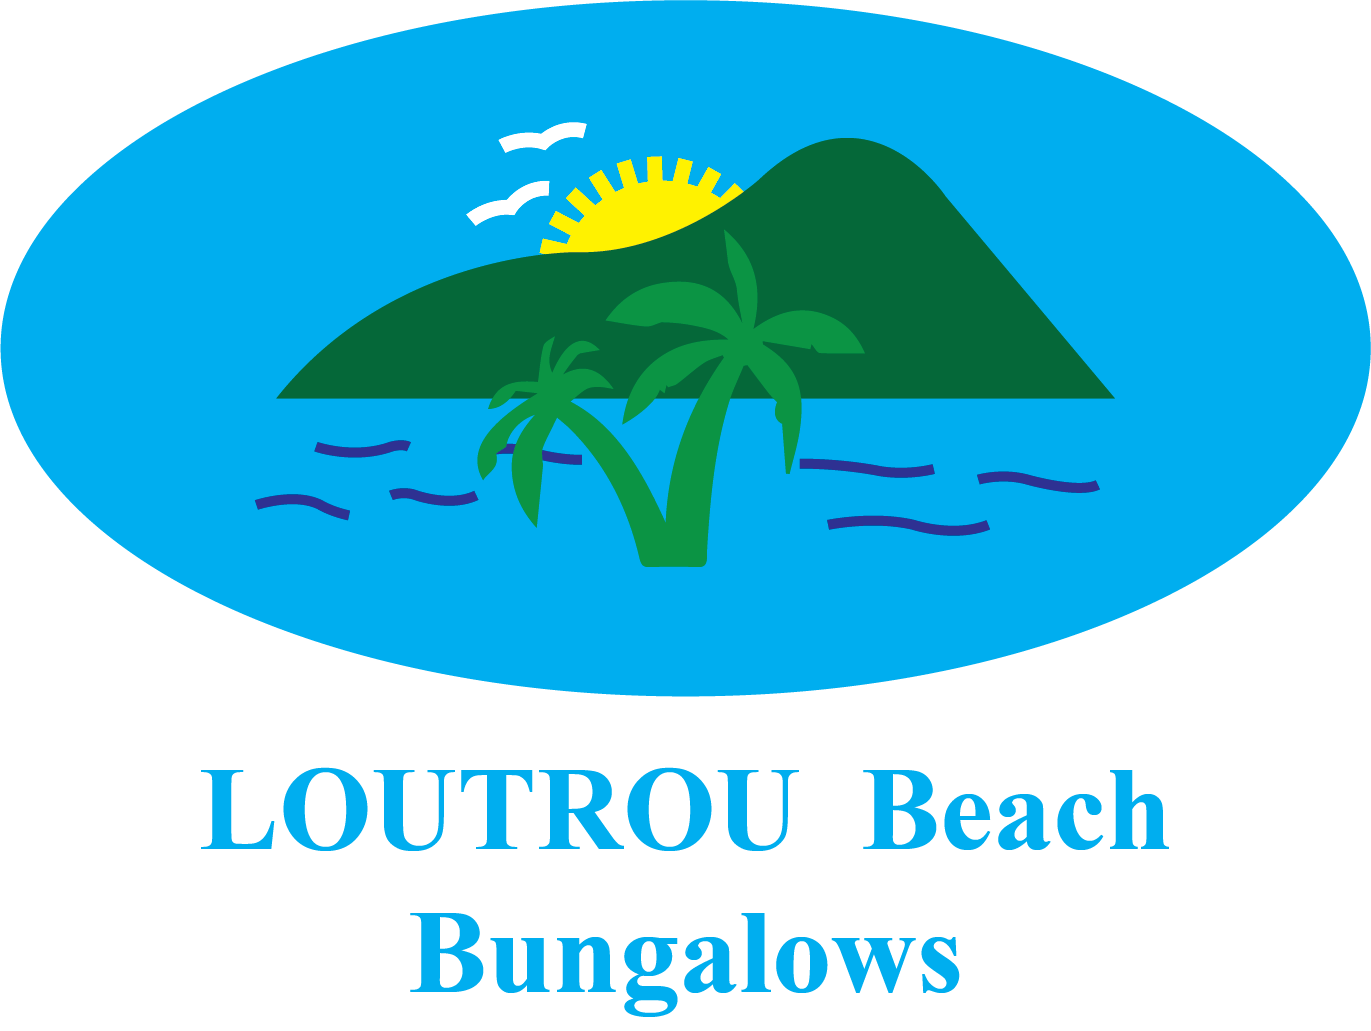 Loutrou Beach Bungalows